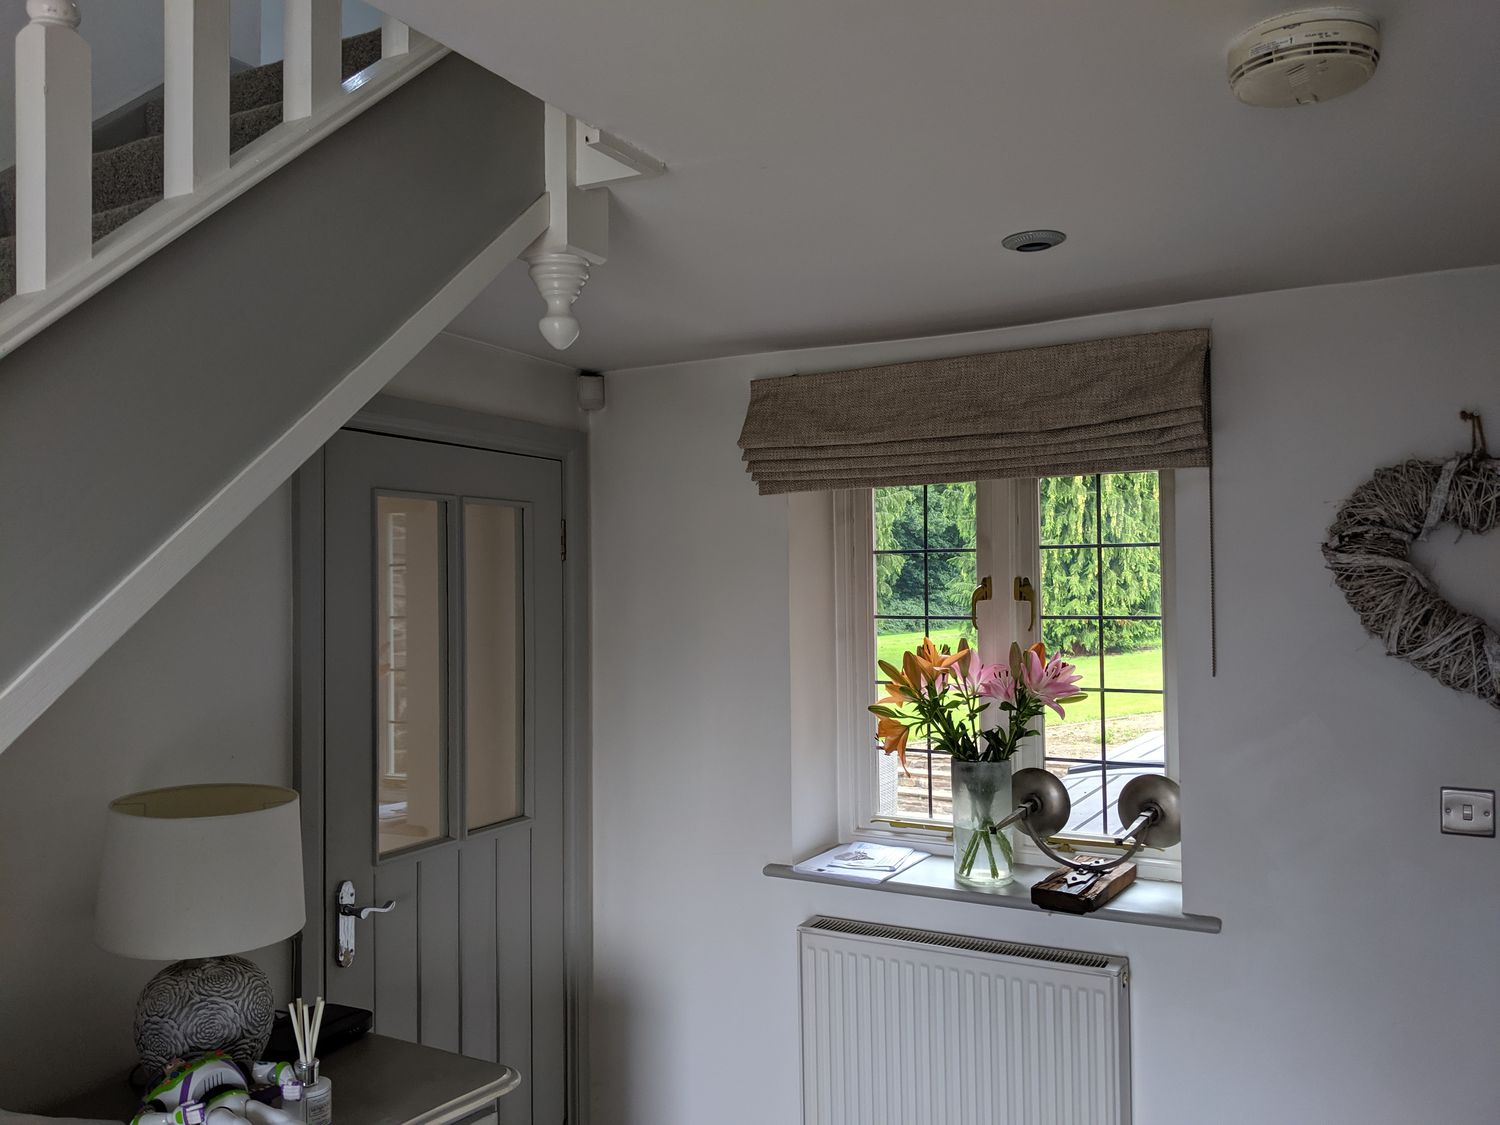 The same view of the hallway before, which was painted grey and white.